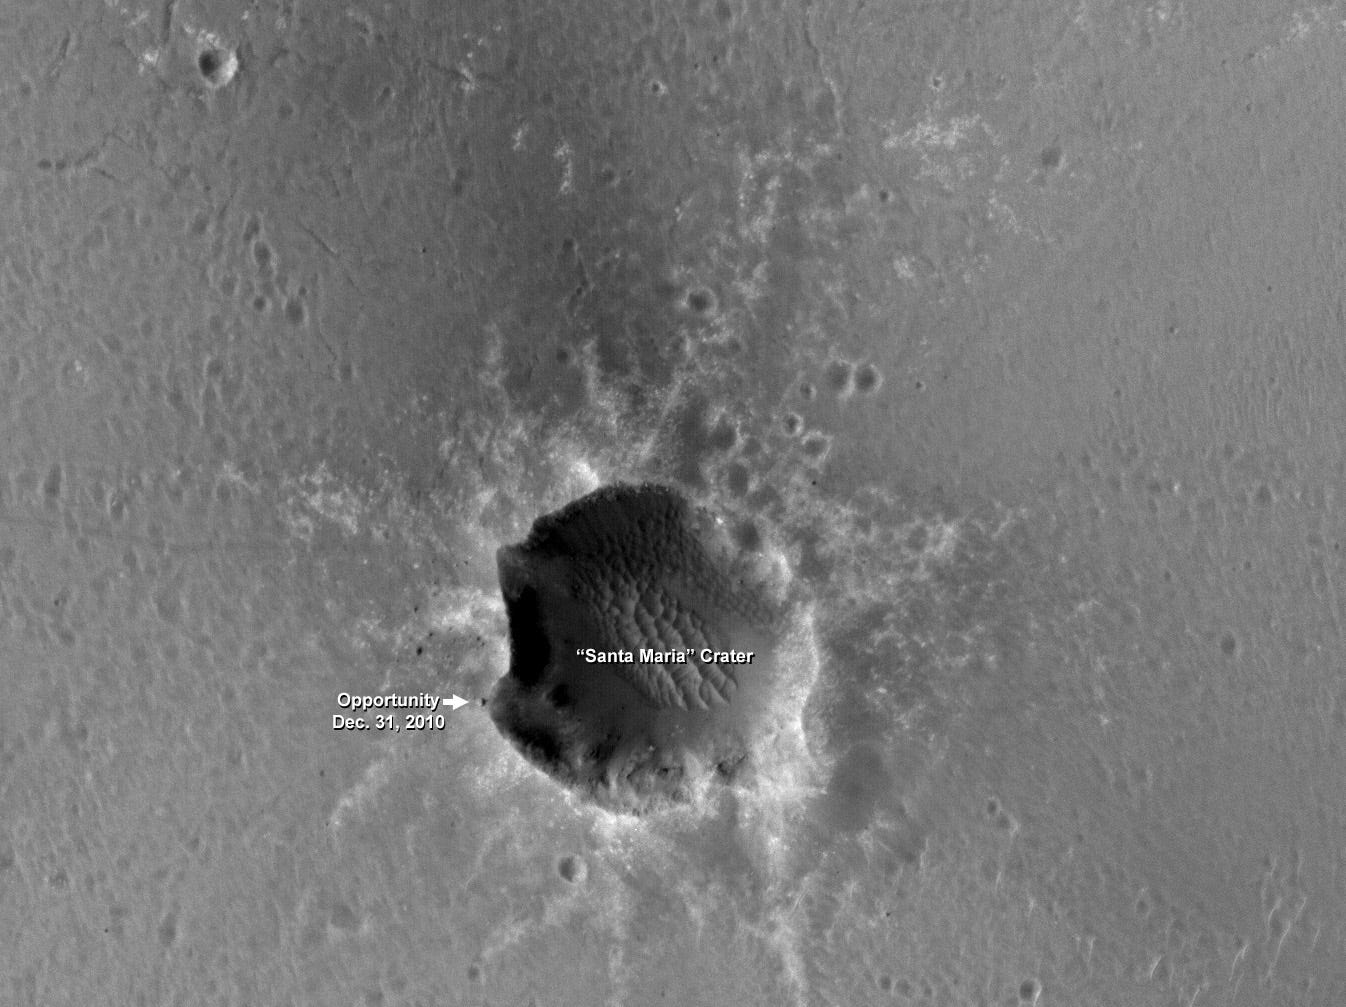 """The High Resolution Imaging Science Experiment (HiRISE) camera on NASA's Mars Reconnaissance Orbiter took this image of the Opportunity rover on the southwest rim of """"Santa Maria"""" crater on New Year's Eve 2010. The camera is operated by the University of Arizona."""